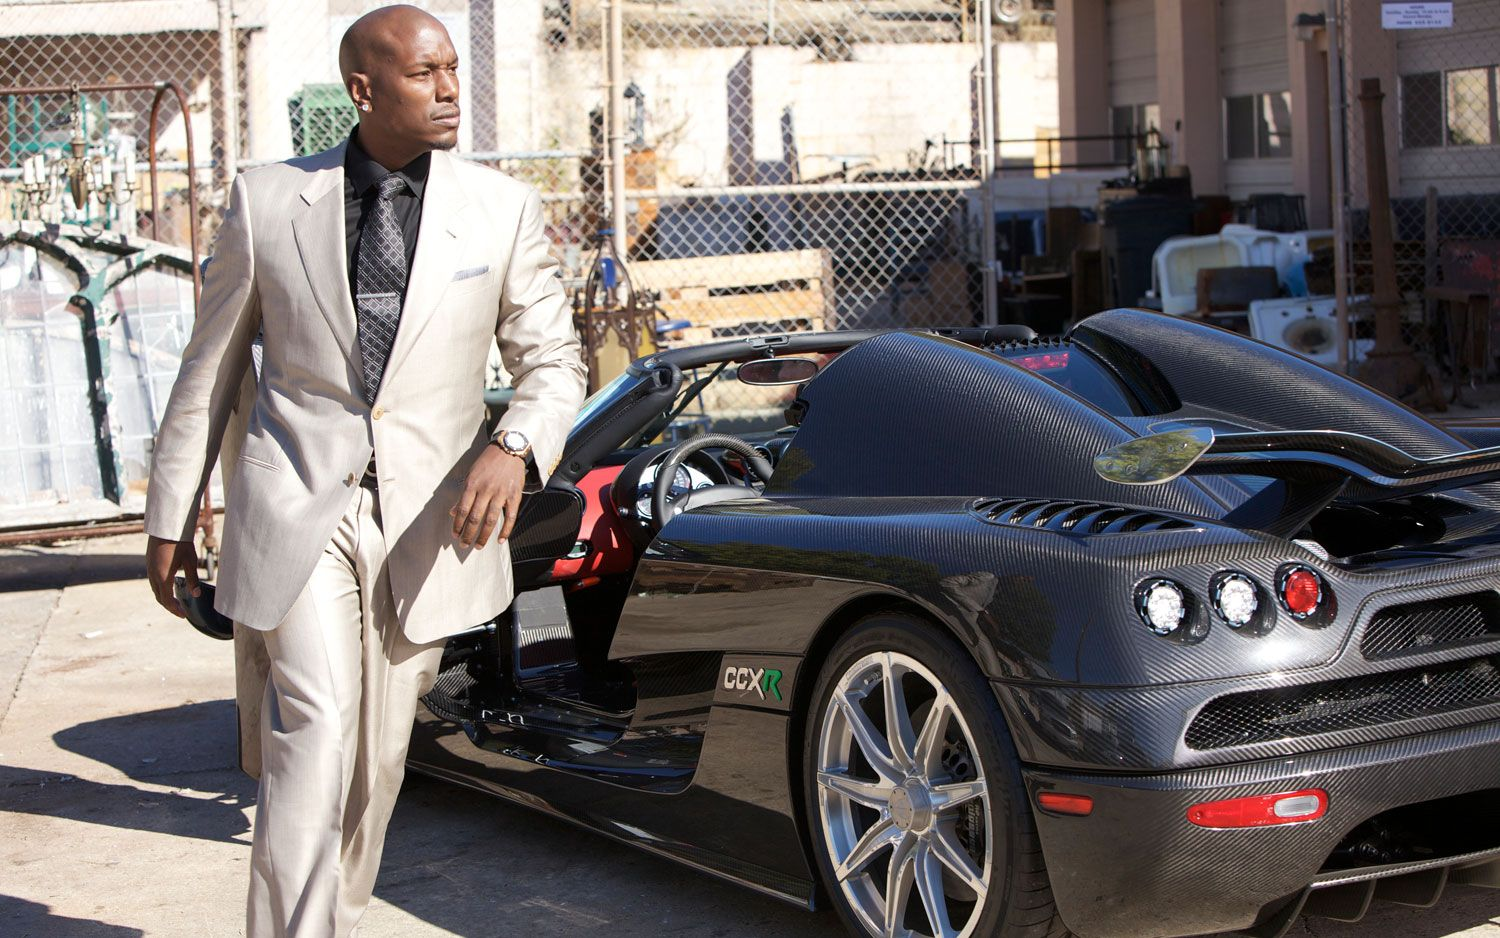 tyrese gibson | Fast Five Tyrese And Hot Car | Tyrese Gibson ...